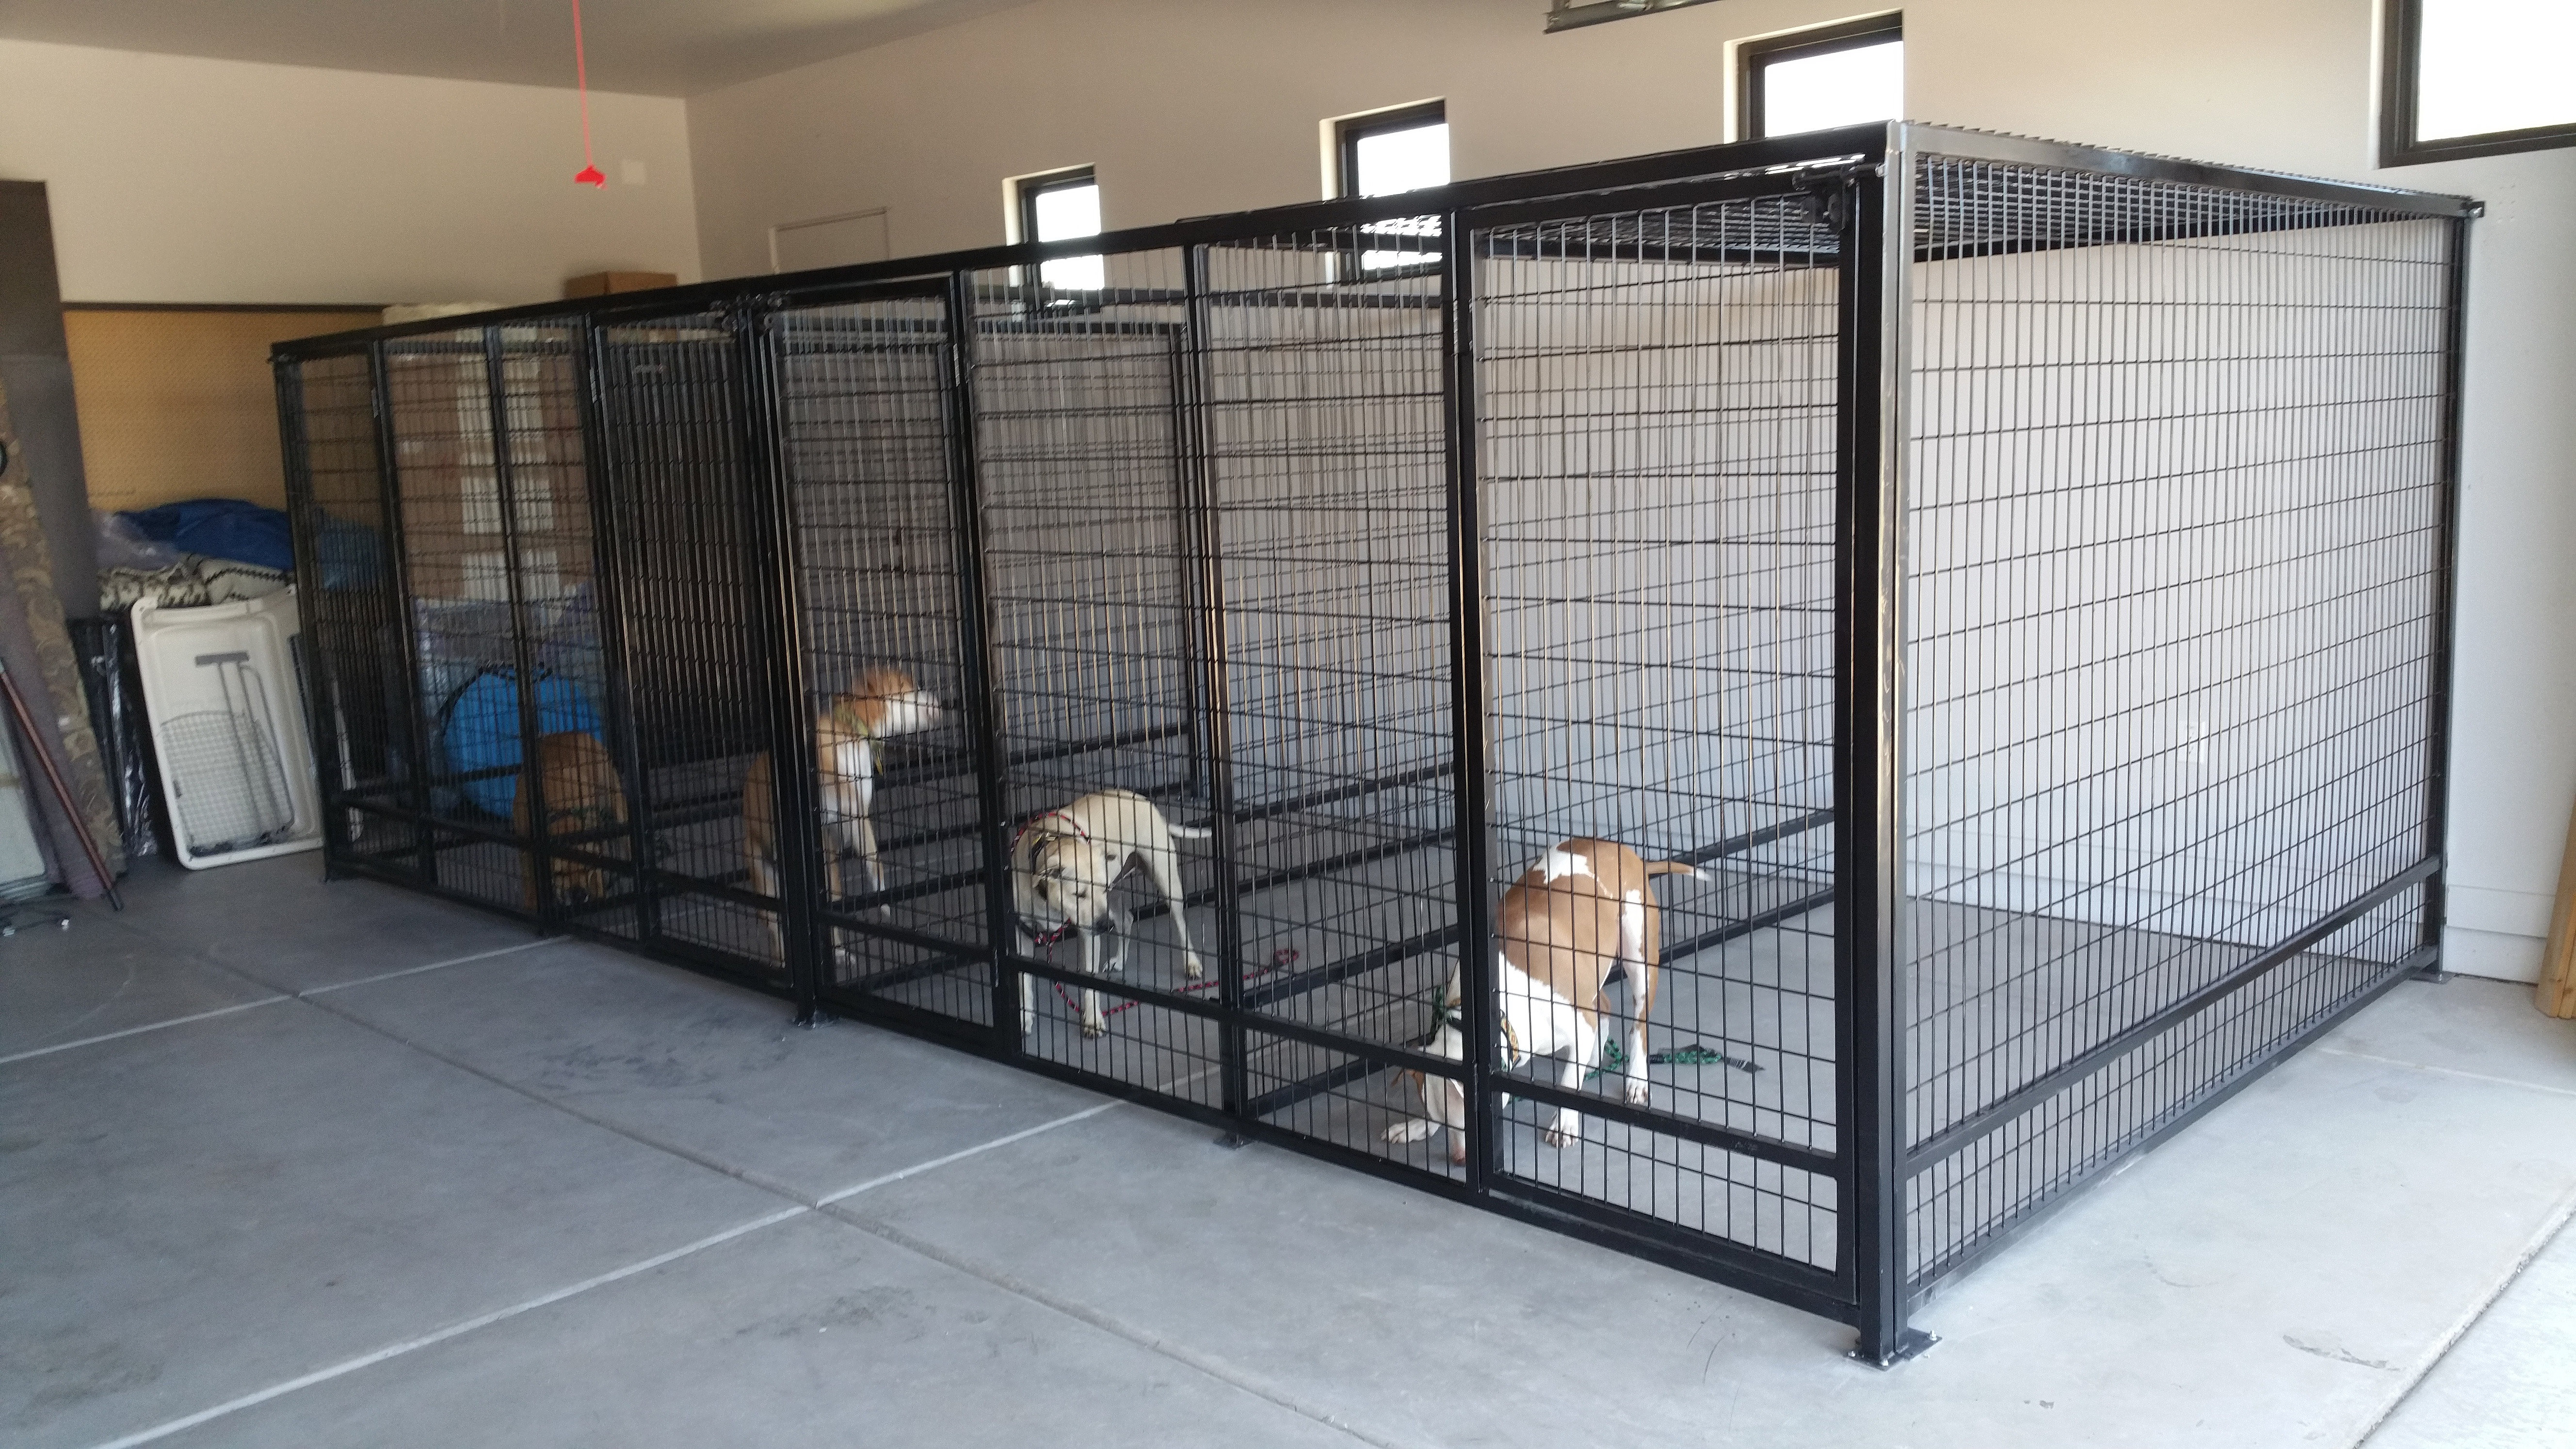 outdoor indoor kennels runs pens cages crates fencing for sale interior kennels